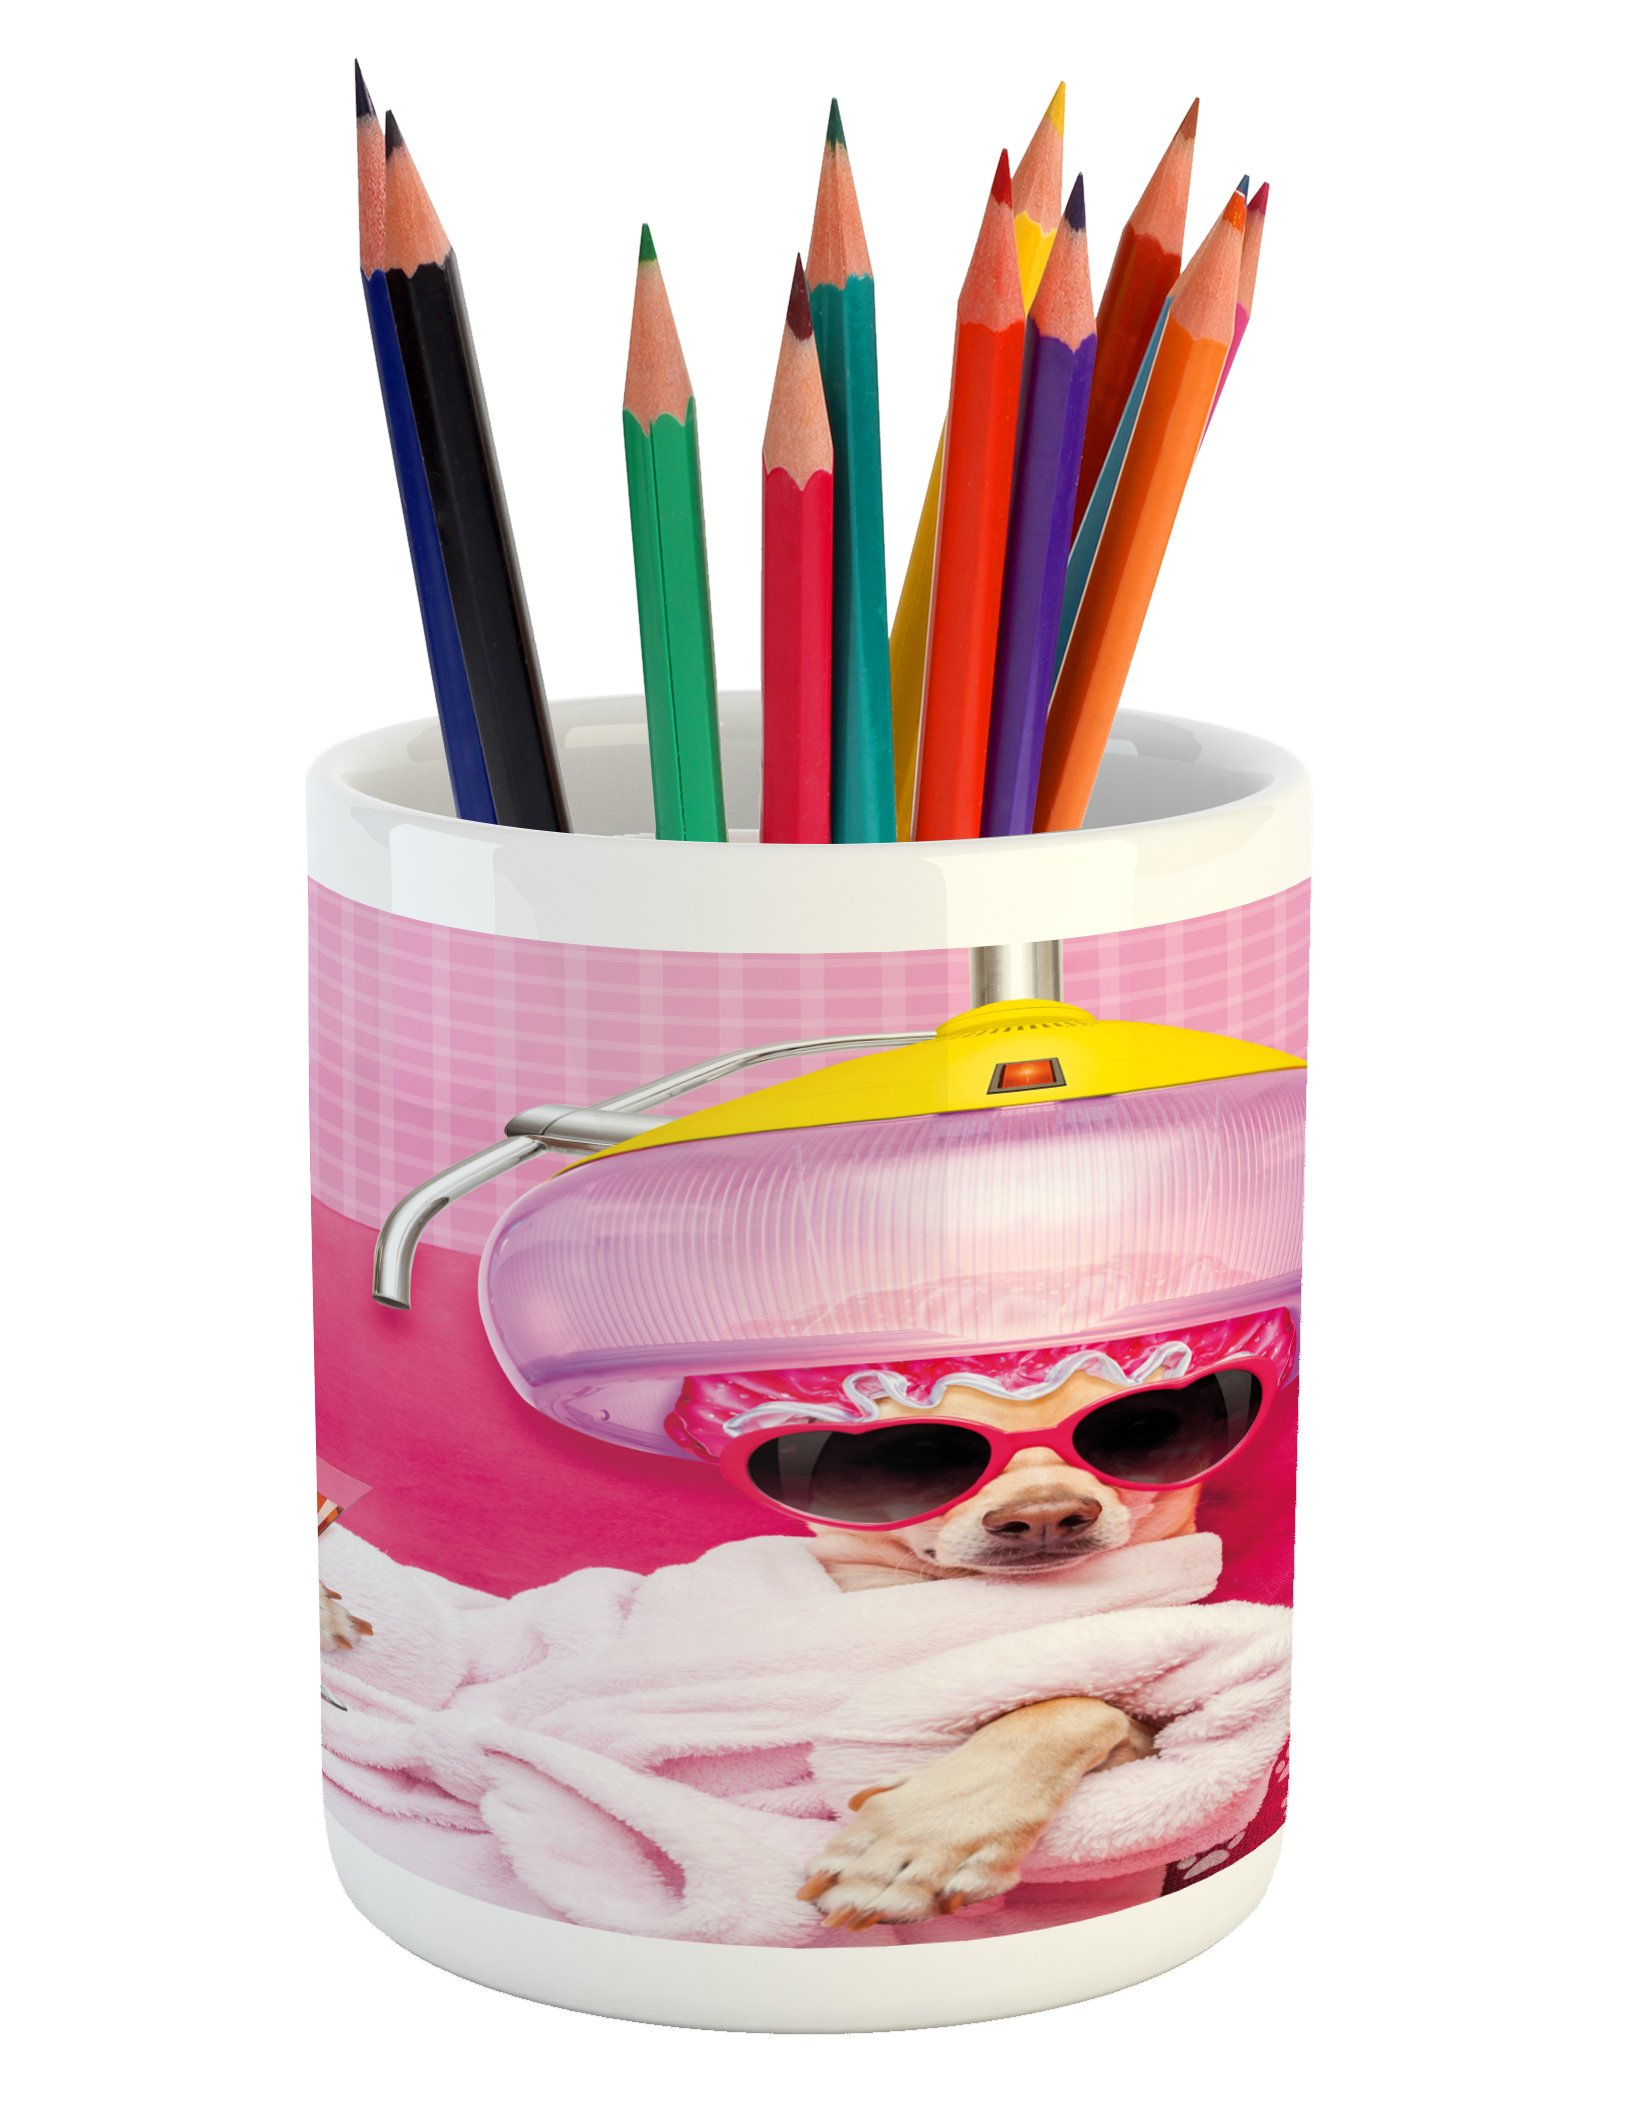 Lunarable Funny Pencil Pen Holder, Chihuahua Dog Relaxing and Lying in Wellness Spa Fashion Puppy Comic Print, Printed Ceramic Pencil Pen Holder for Desk Office Accessory, Magenta Baby Pink